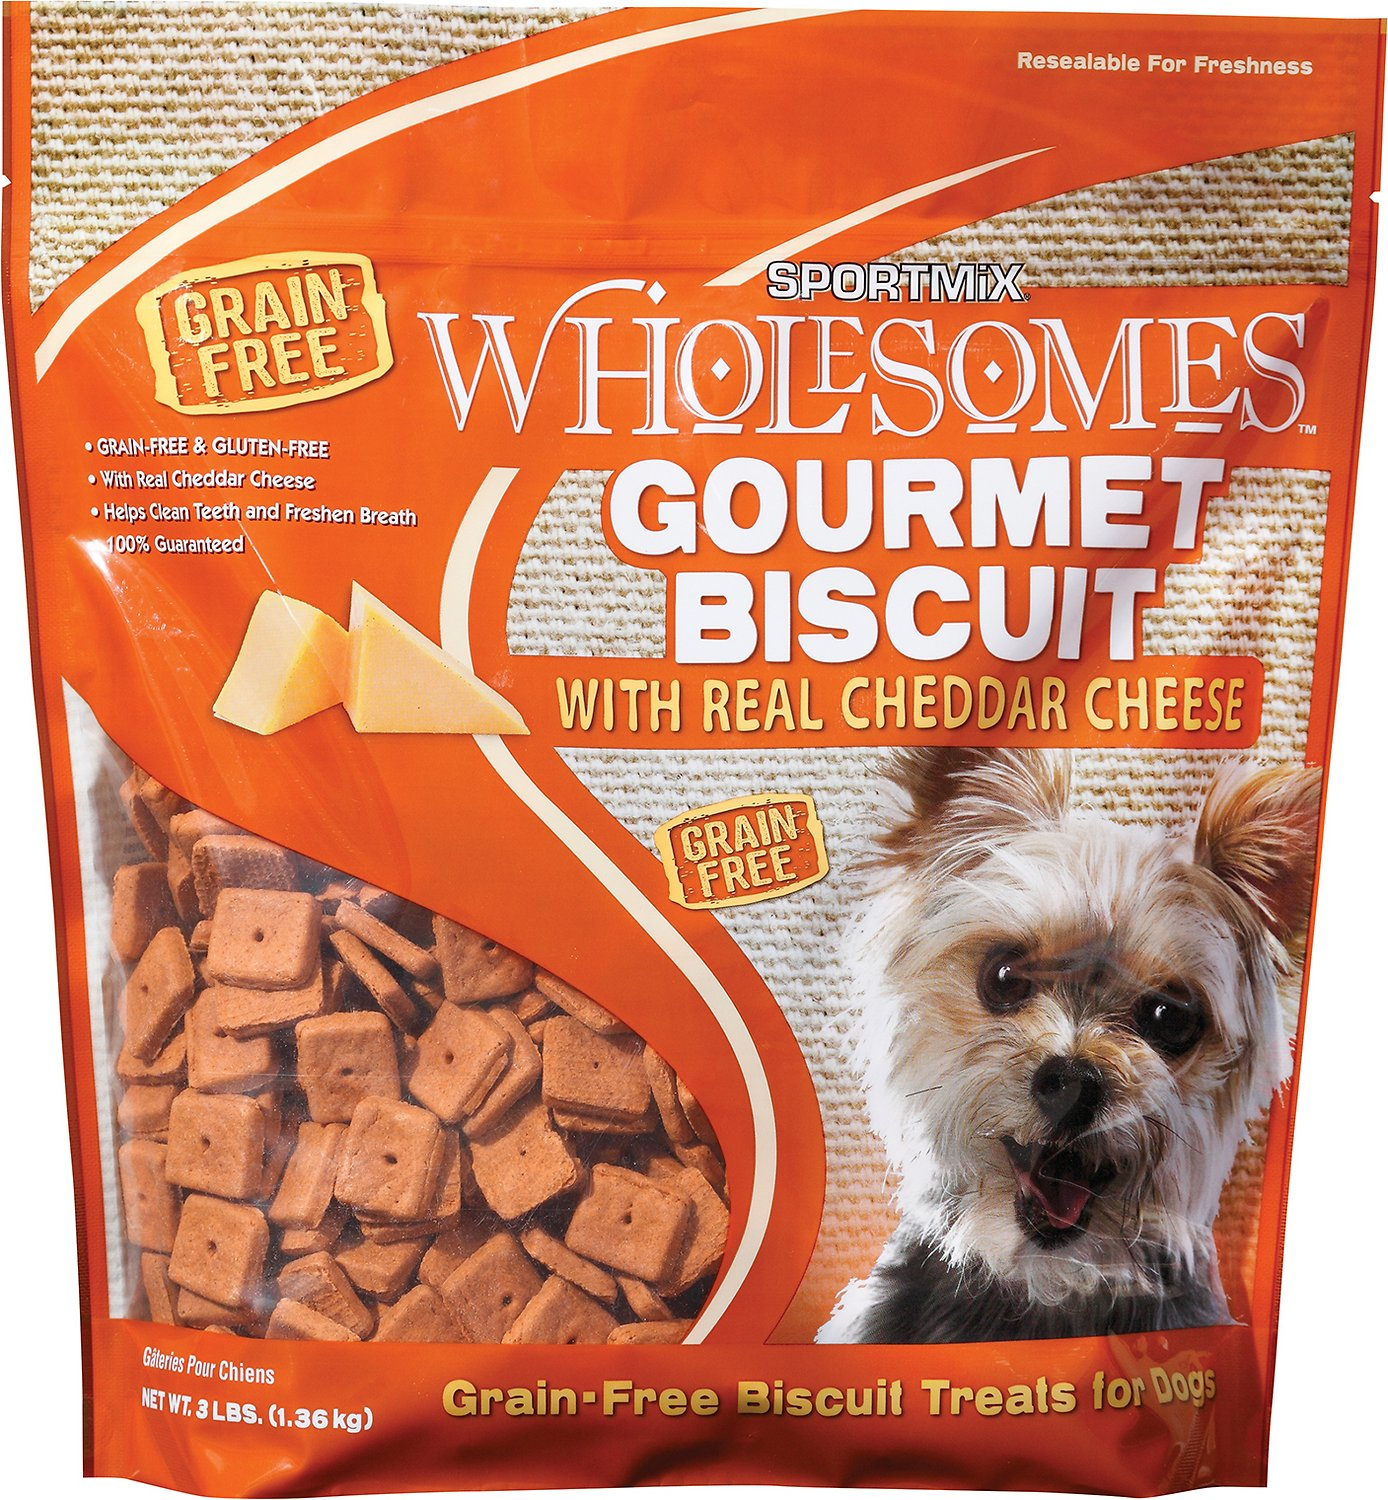 SPORTMiX Wholesomes Grain-Free Premium Gourmet Biscuit with Real Cheddar Cheese Dog Treats Image